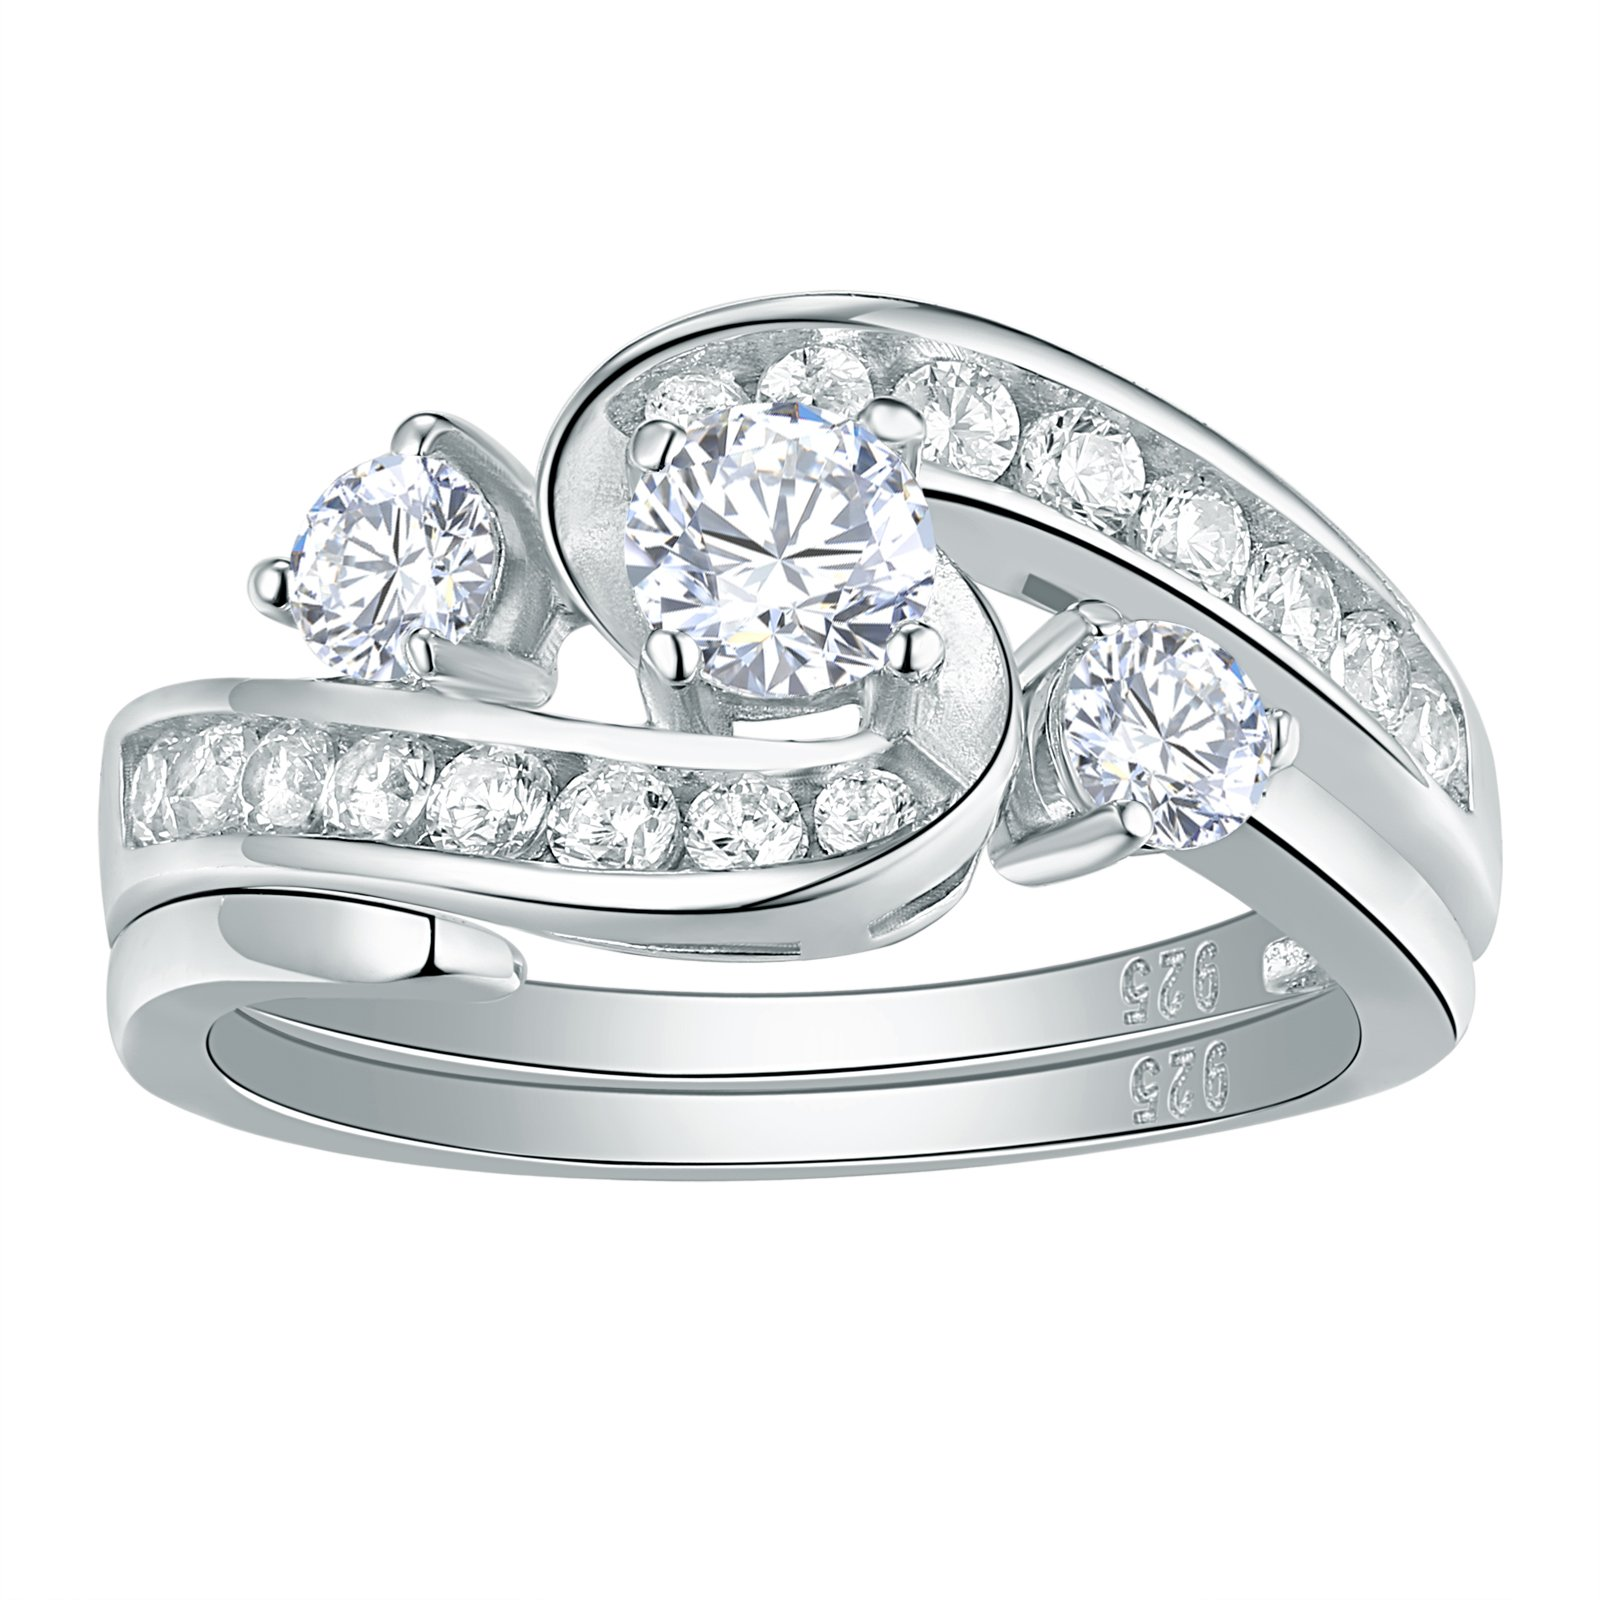 Newshe Sparkle 2ct AAA Cz 925 Sterling Silver Engagement Band Wedding Ring Set For Woman Size 6